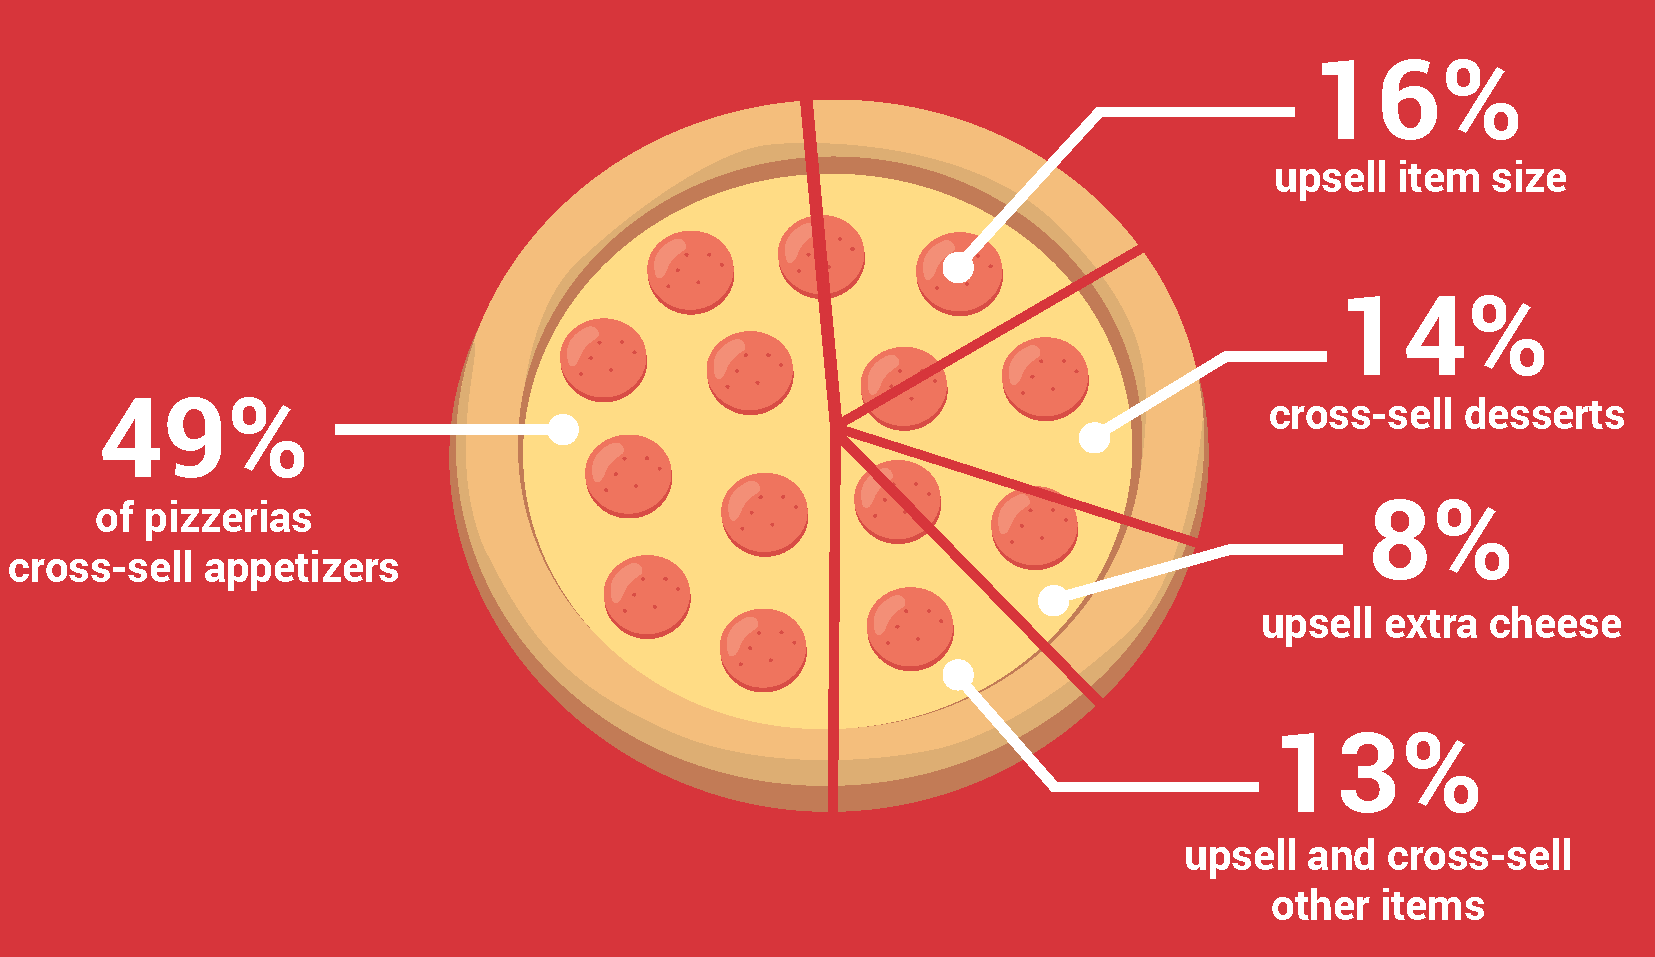 49% of pizzerias cross-sell appetizers